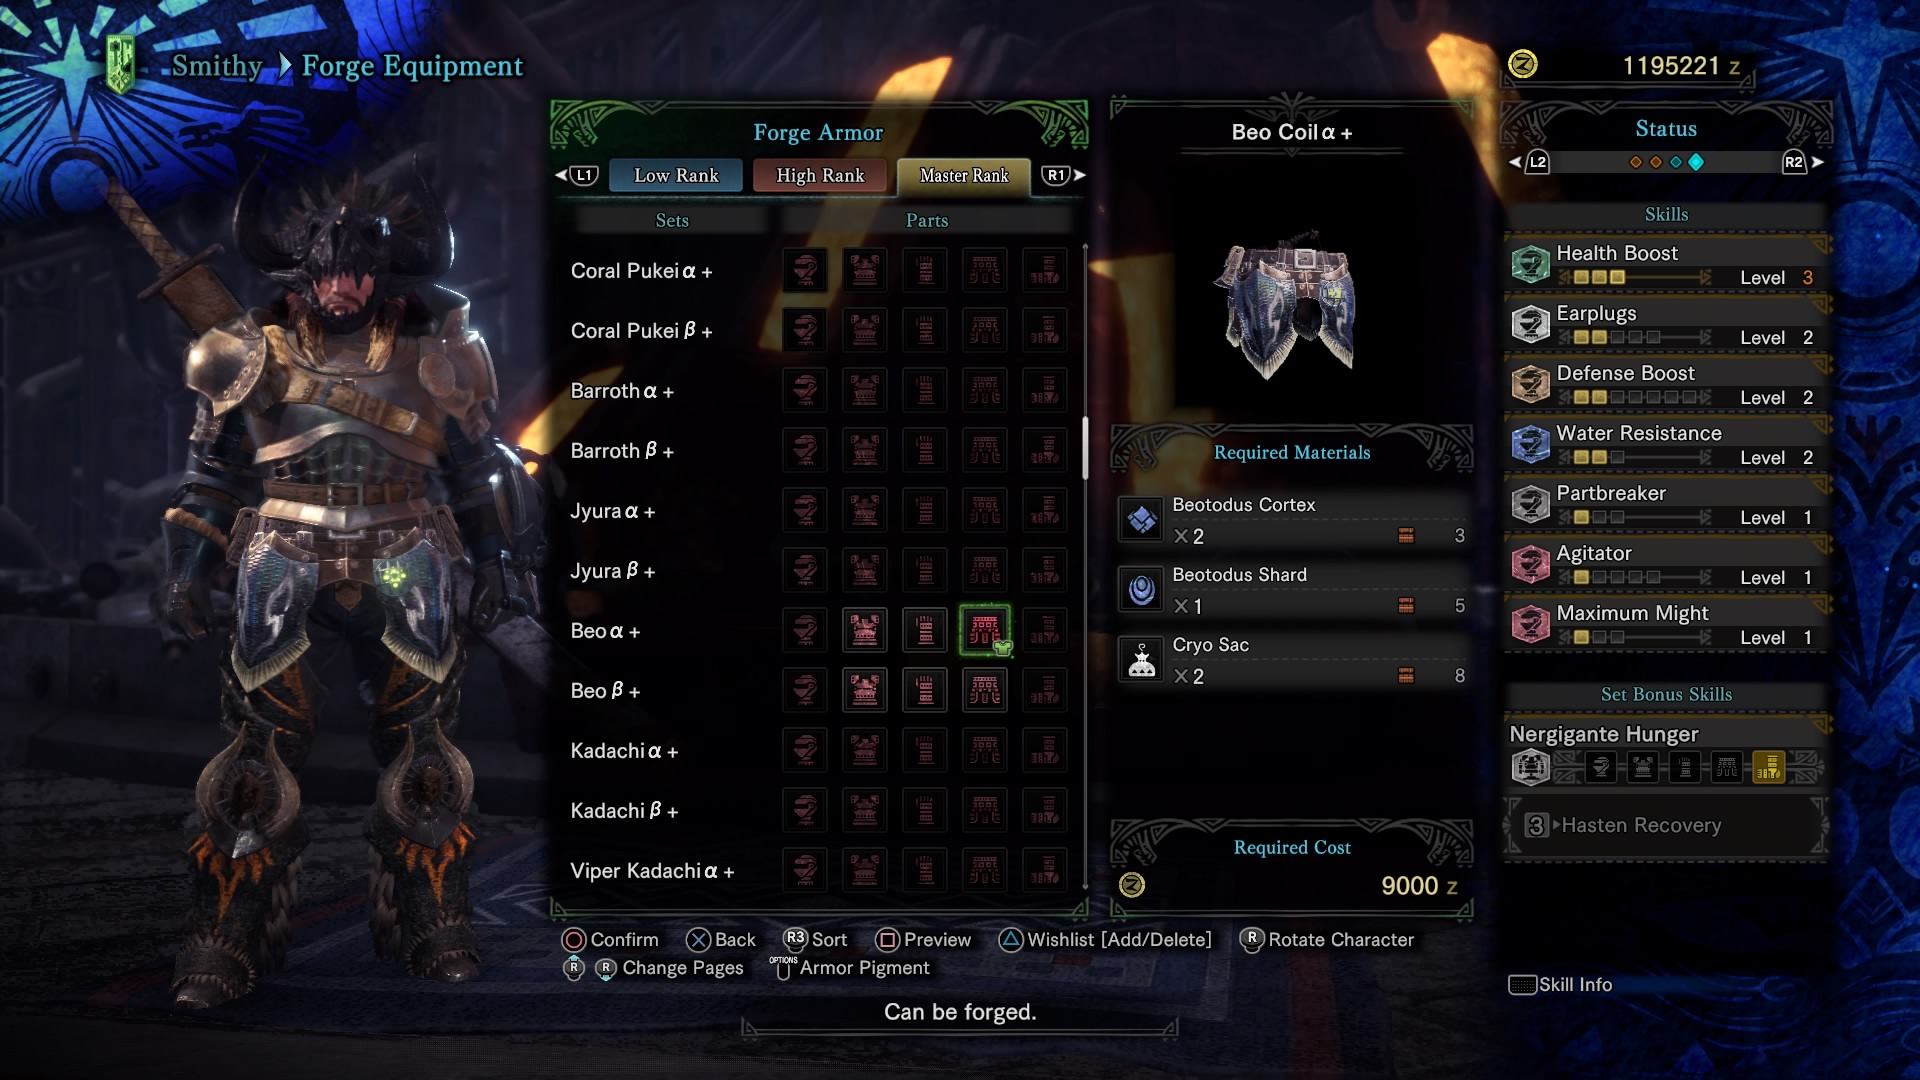 Mhw Iceborne Recommended Armor For Early Master Rank Gamewith Mhw iceborne raging brachydios ps4 bow solo 5 11 08. mhw iceborne recommended armor for